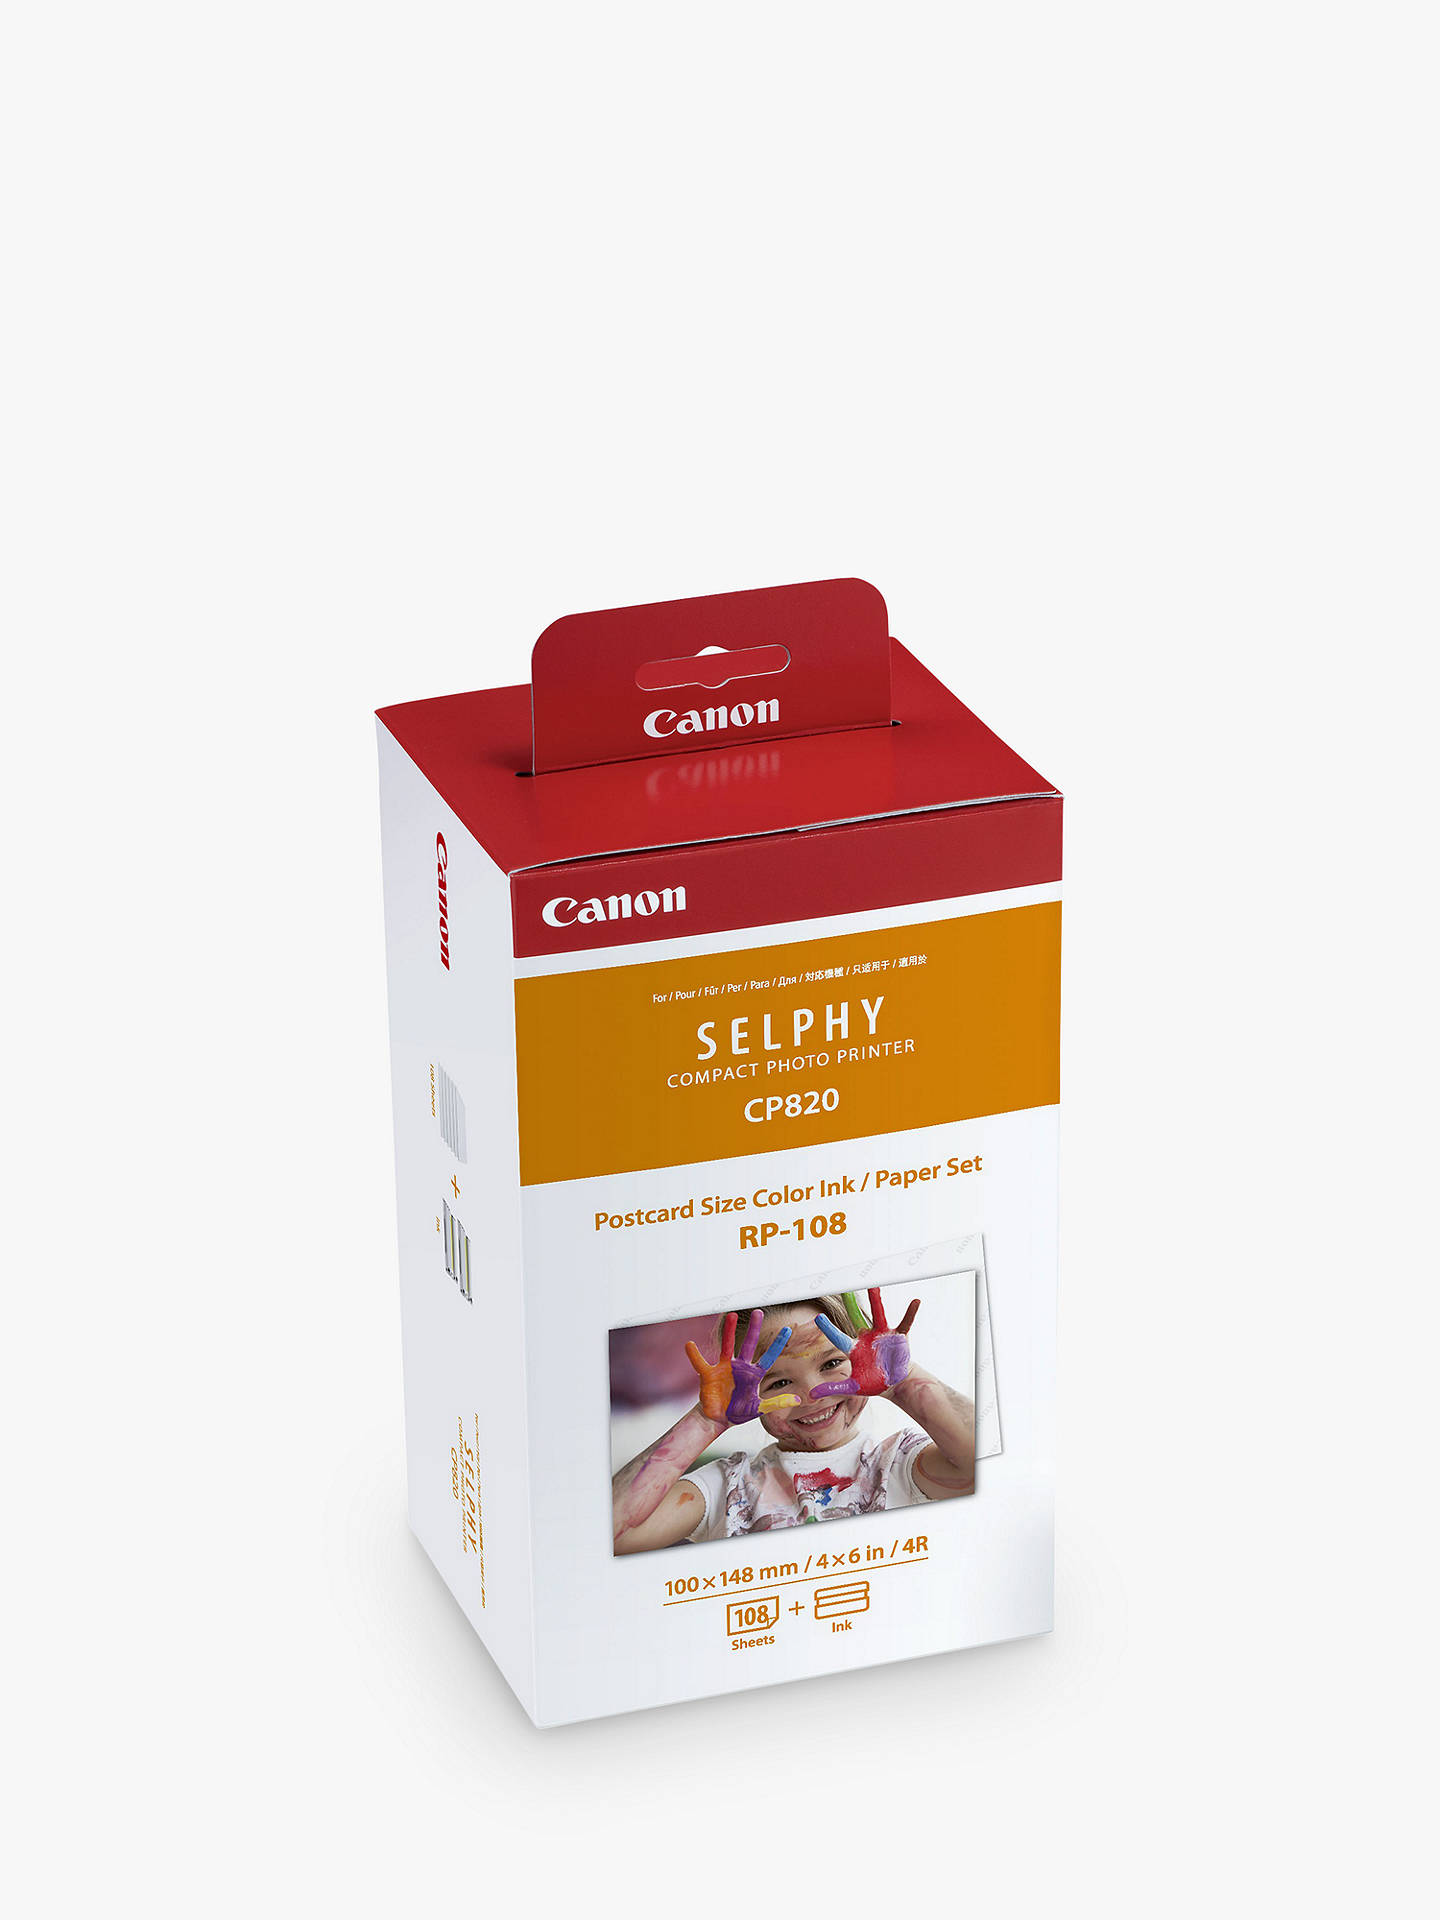 BuyCanon RP-108 Print Pack for SELPHY CP910, CP1200 & CP1300, 108 Prints Online at johnlewis.com